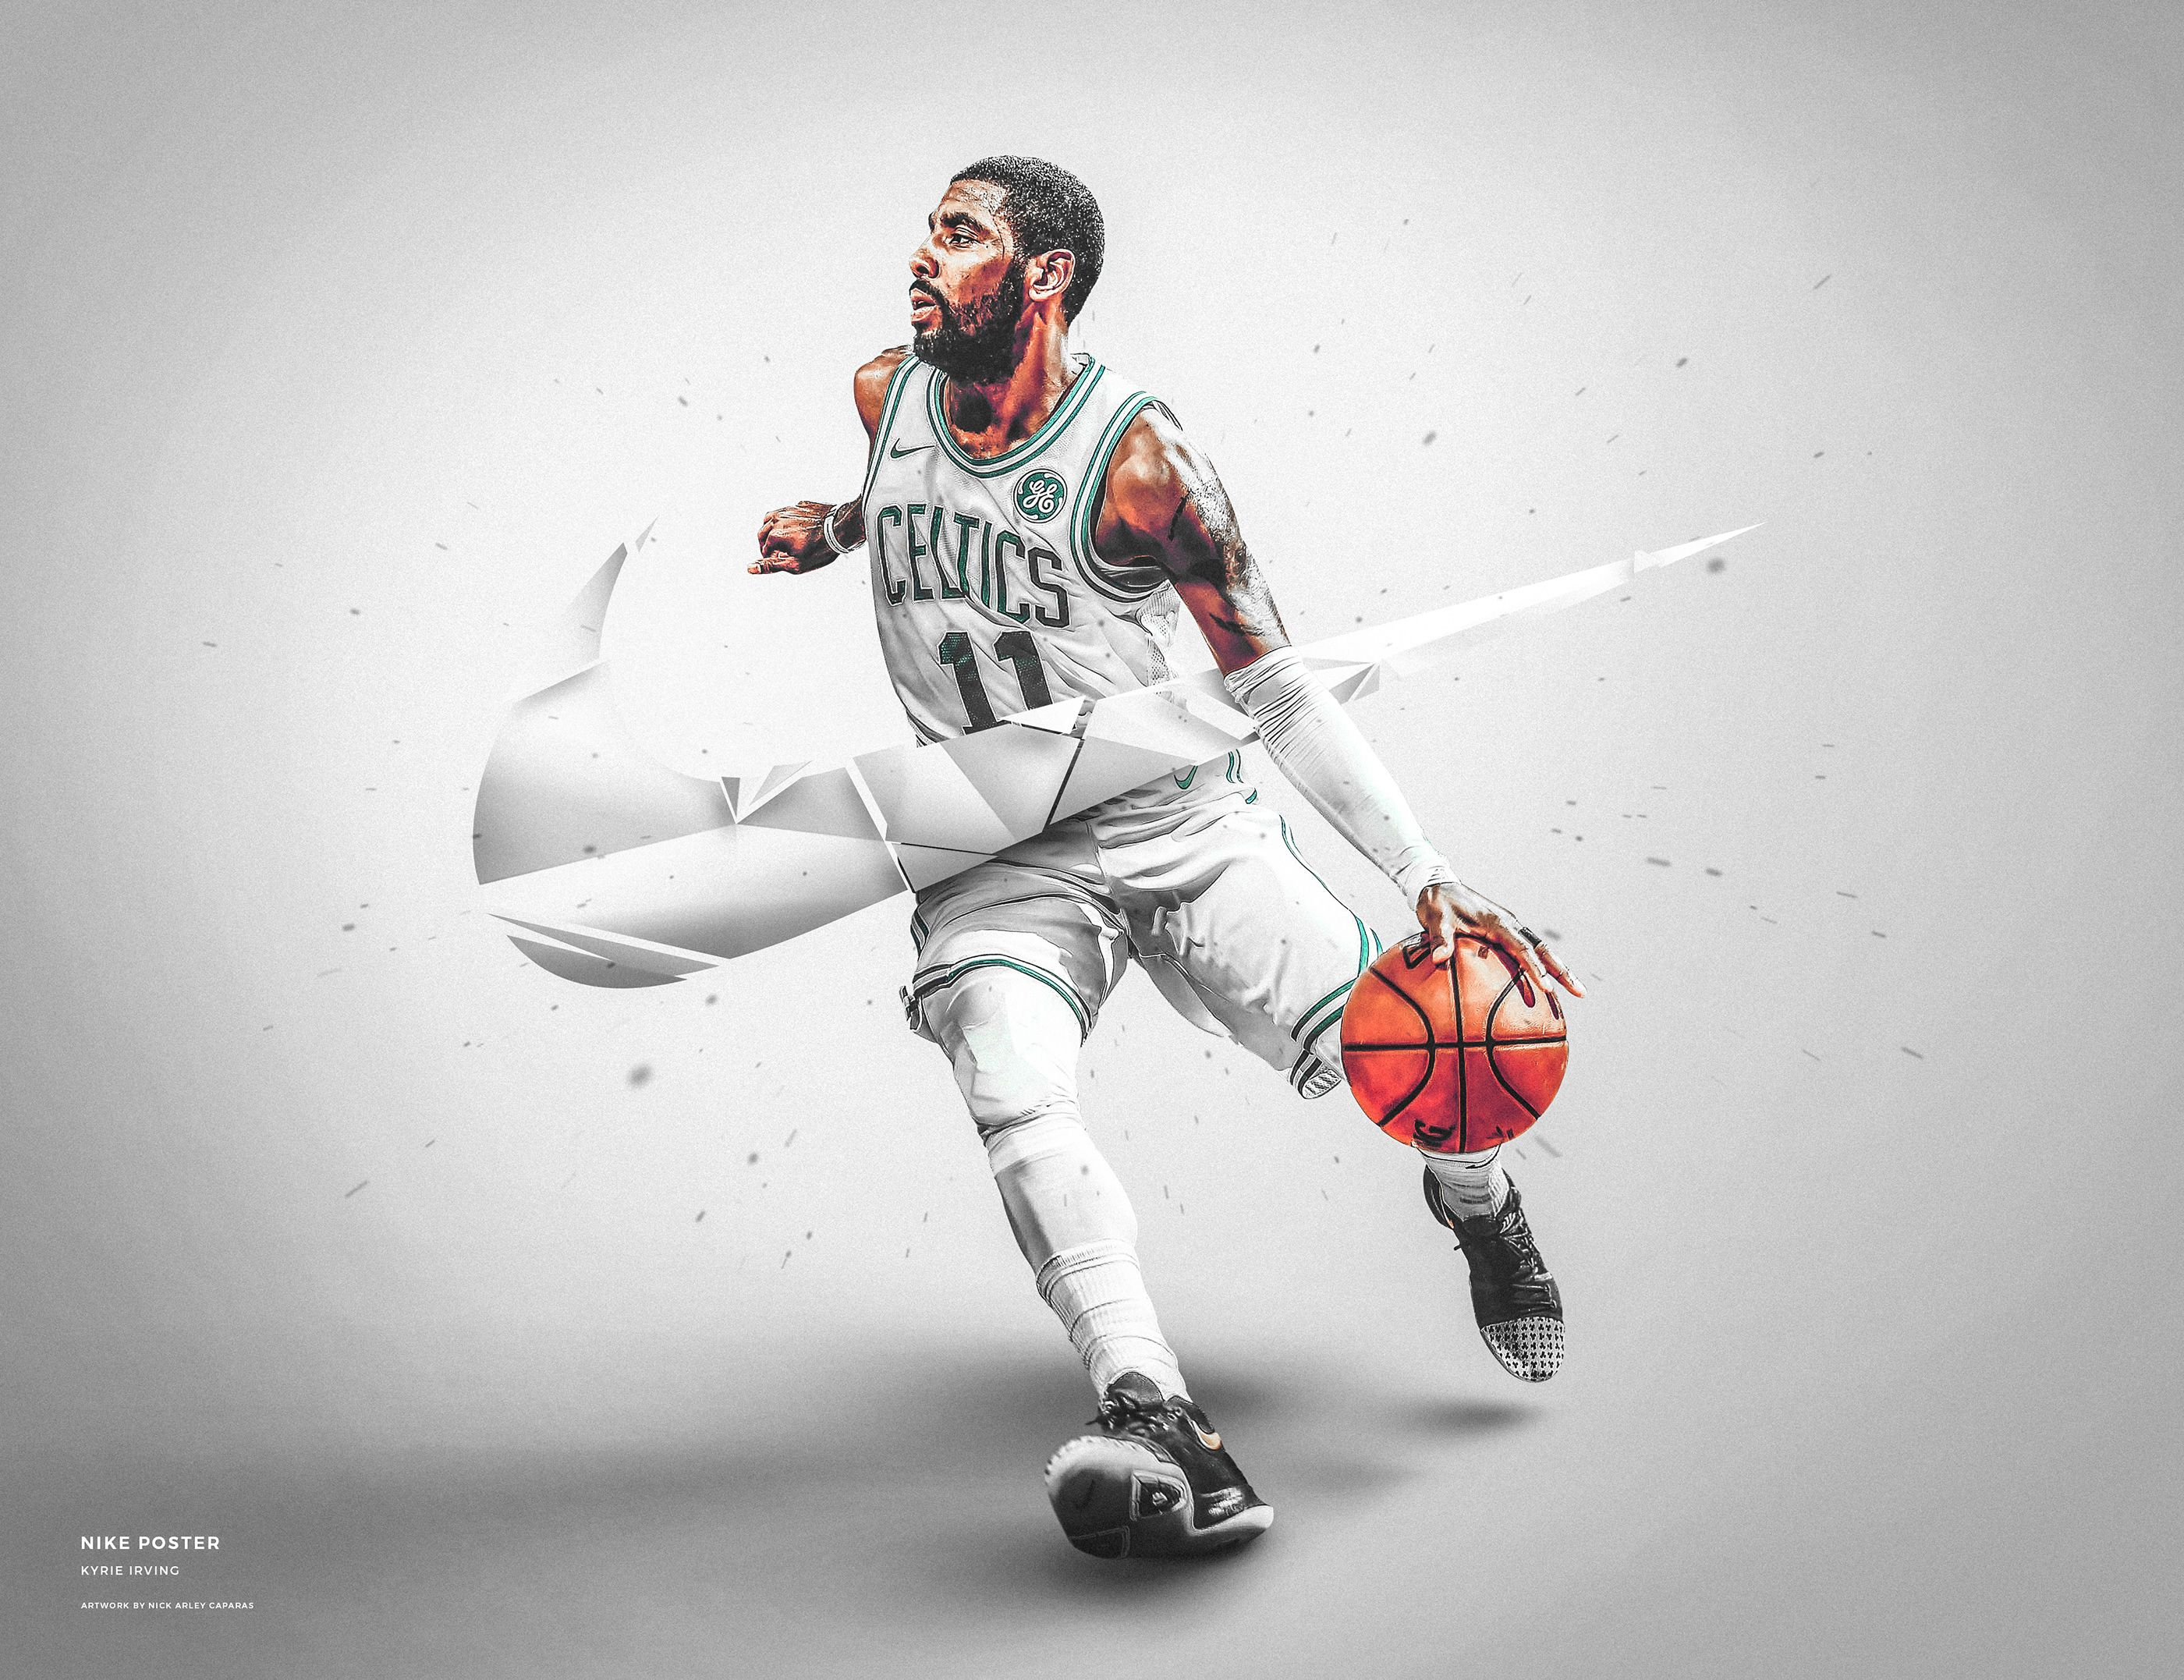 Nike Wallpaper Nba: PC/Mac/iPhone/Android On